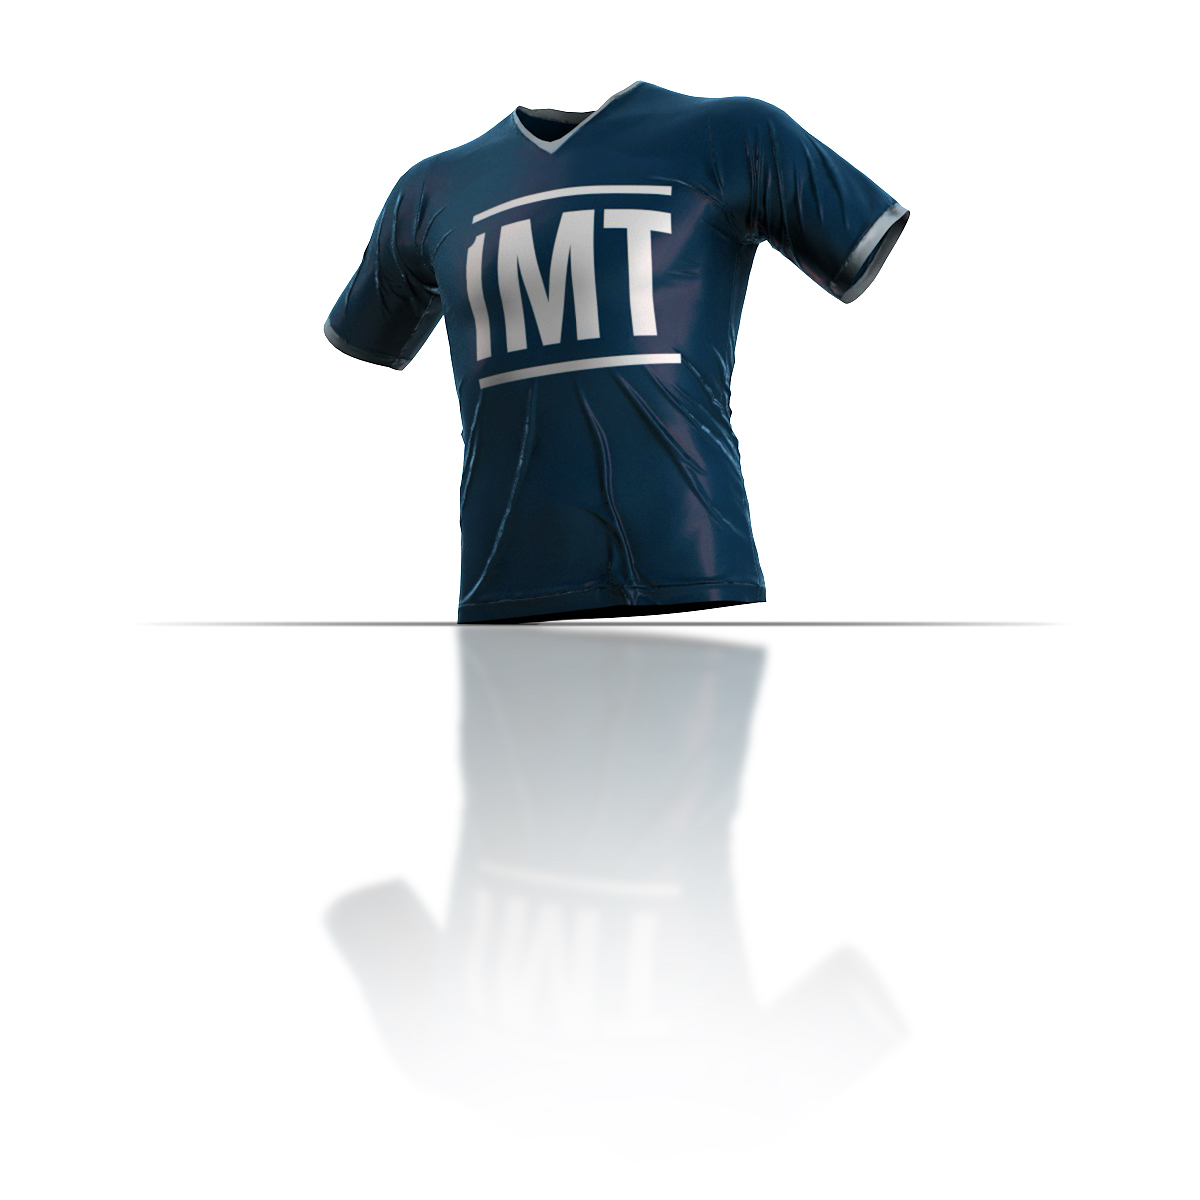 "Art of a jersey with ""1mt"" on it"